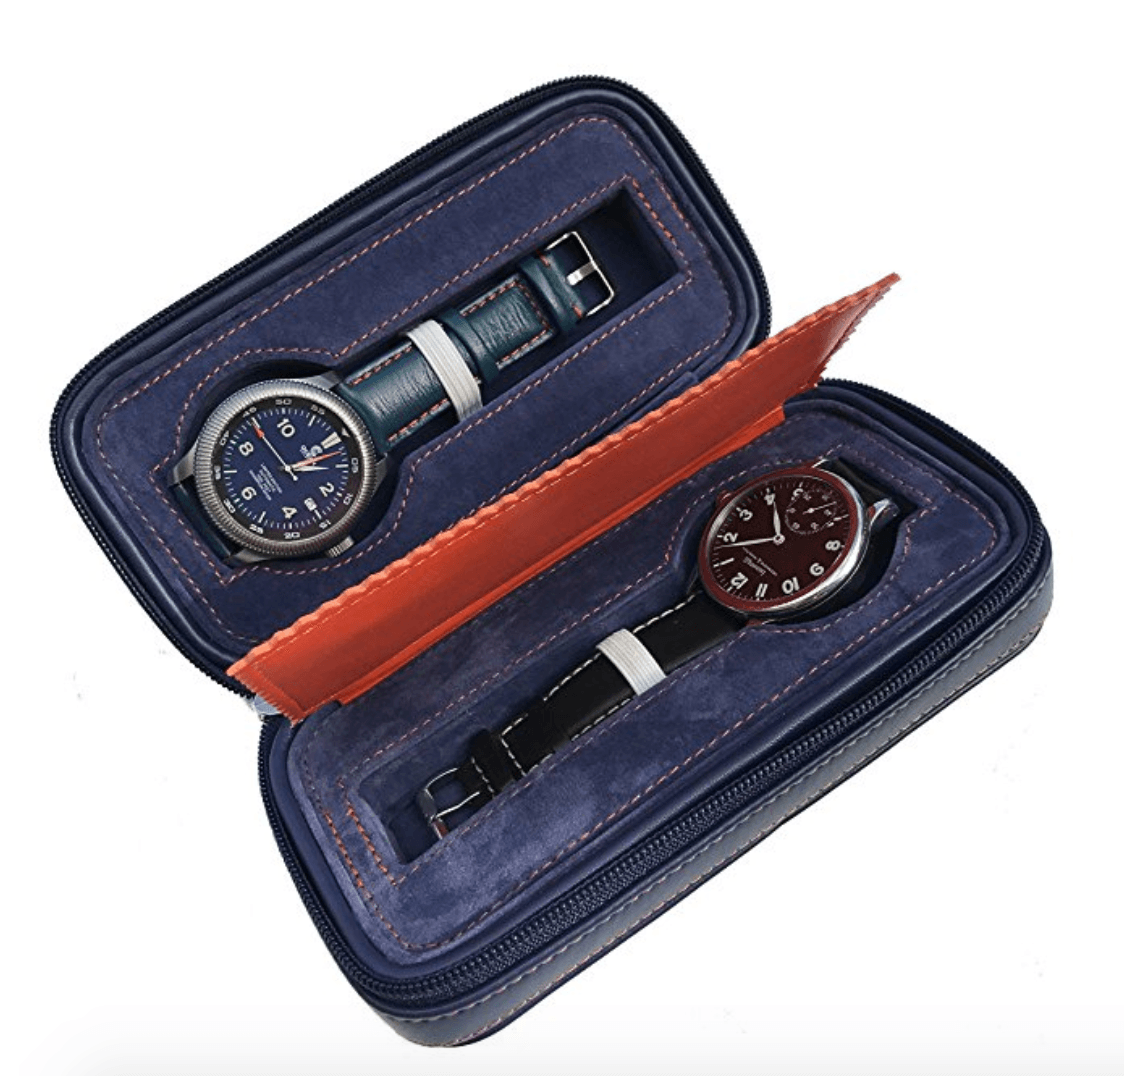 Leather Watch Storage Box gifts for travelers